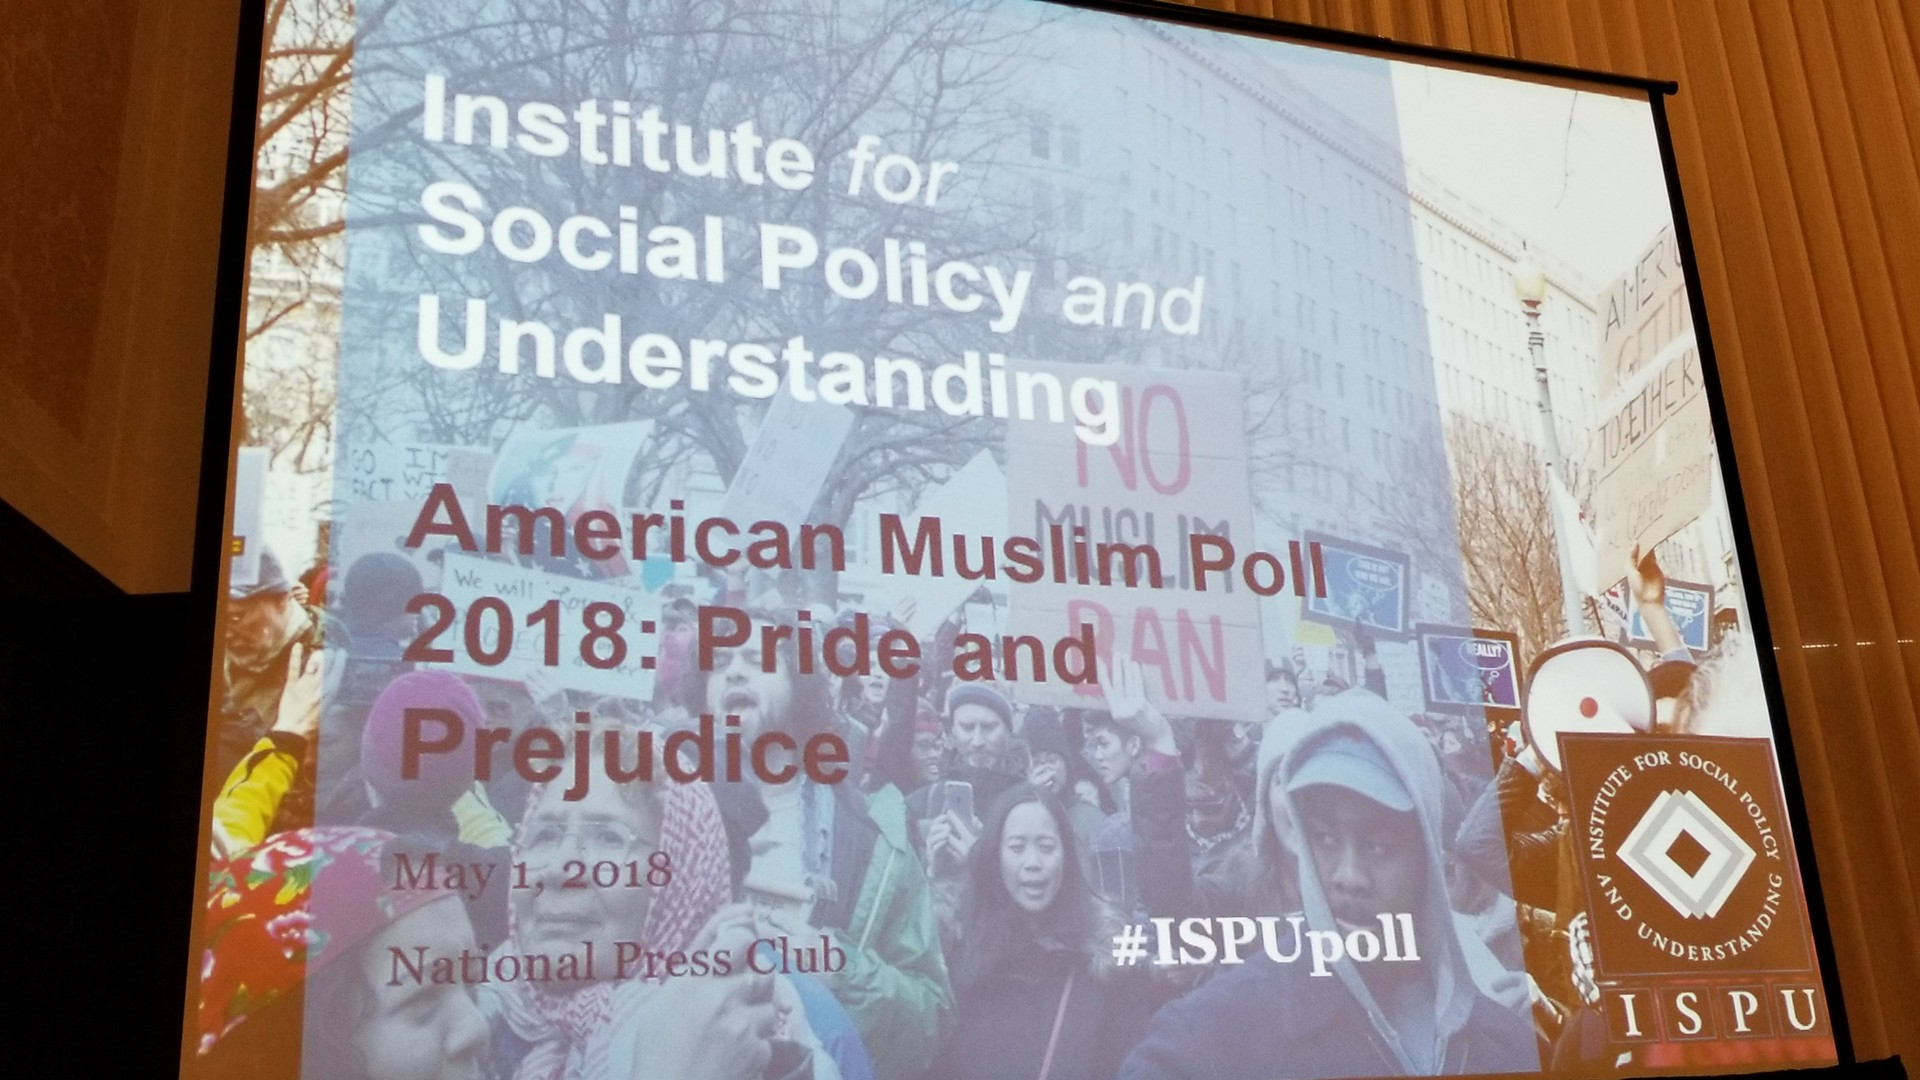 American Muslim Poll 2018: From Pride to Prejudice